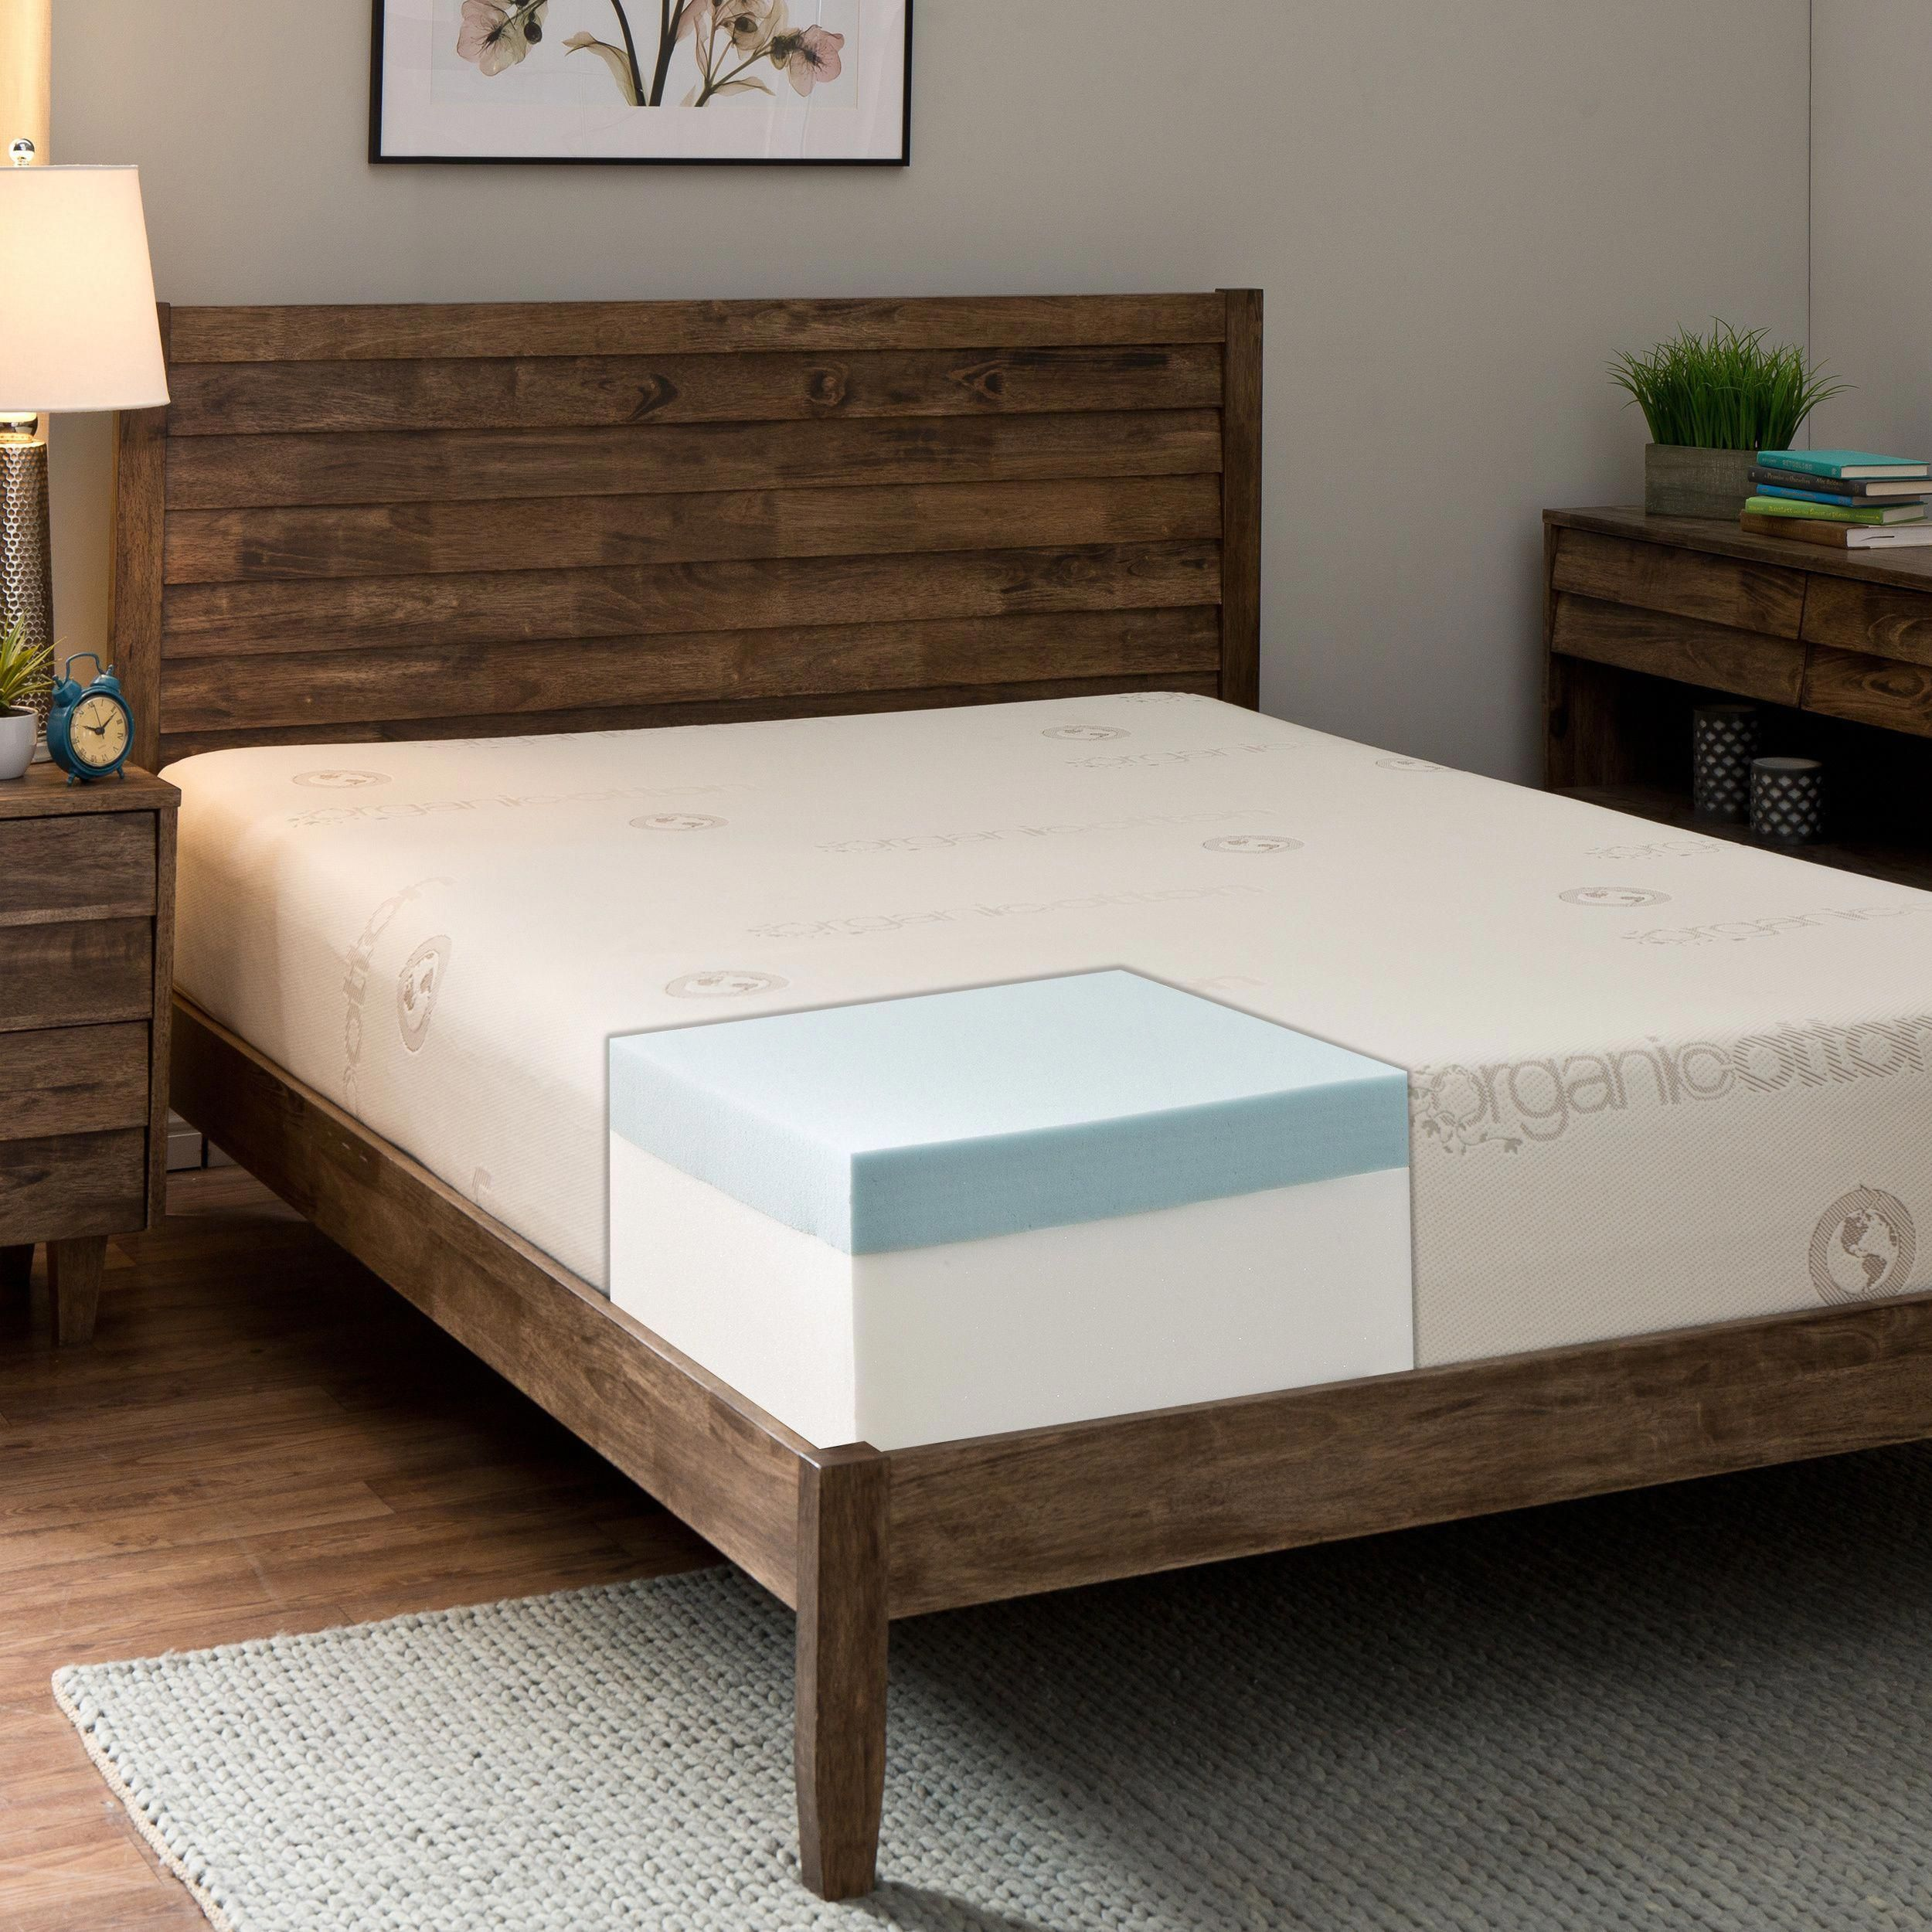 Comfort Dreams Cotton 10 Inch King Size Memory Foam Mattress Memoryfoammattresshot King Size Memory Foam Mattress Memory Foam Mattress Foam Mattress